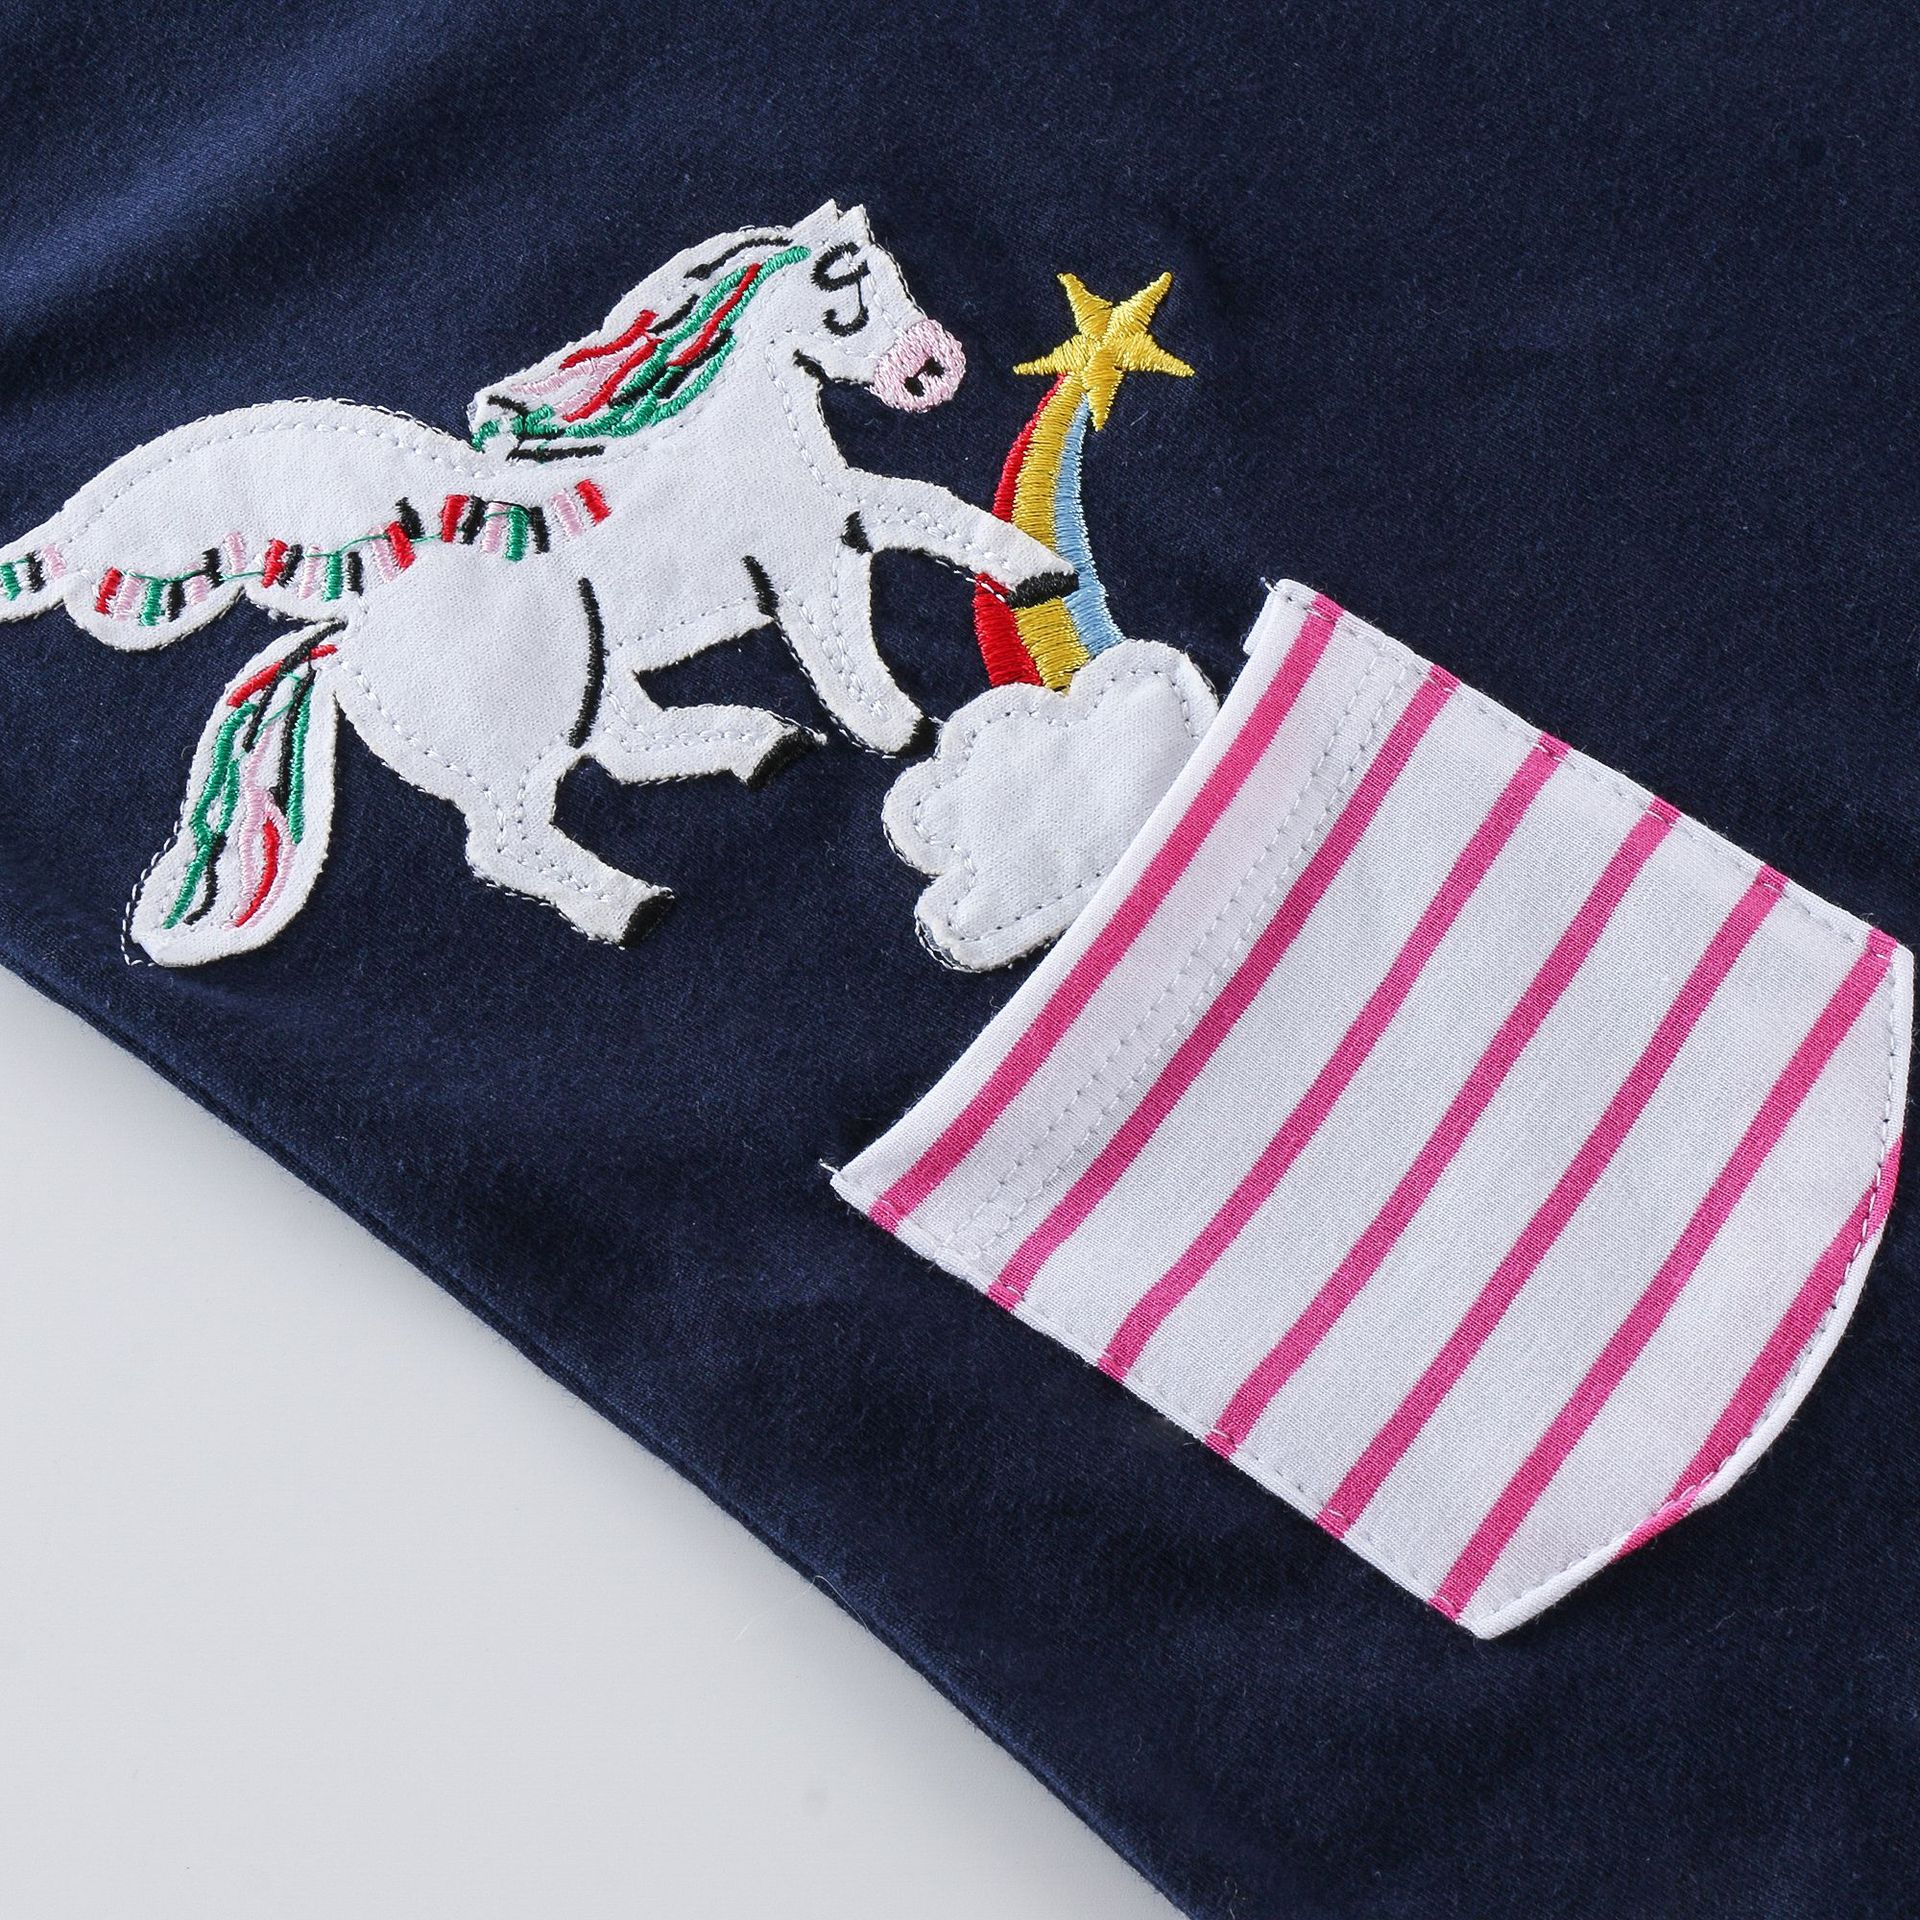 SAILEROAD Girls Unicorn Costume Cartoon Cotton Long Sleeve Lovely Dresses  Autumn Winter for Baby Girl Party Dress 2-7Years 5